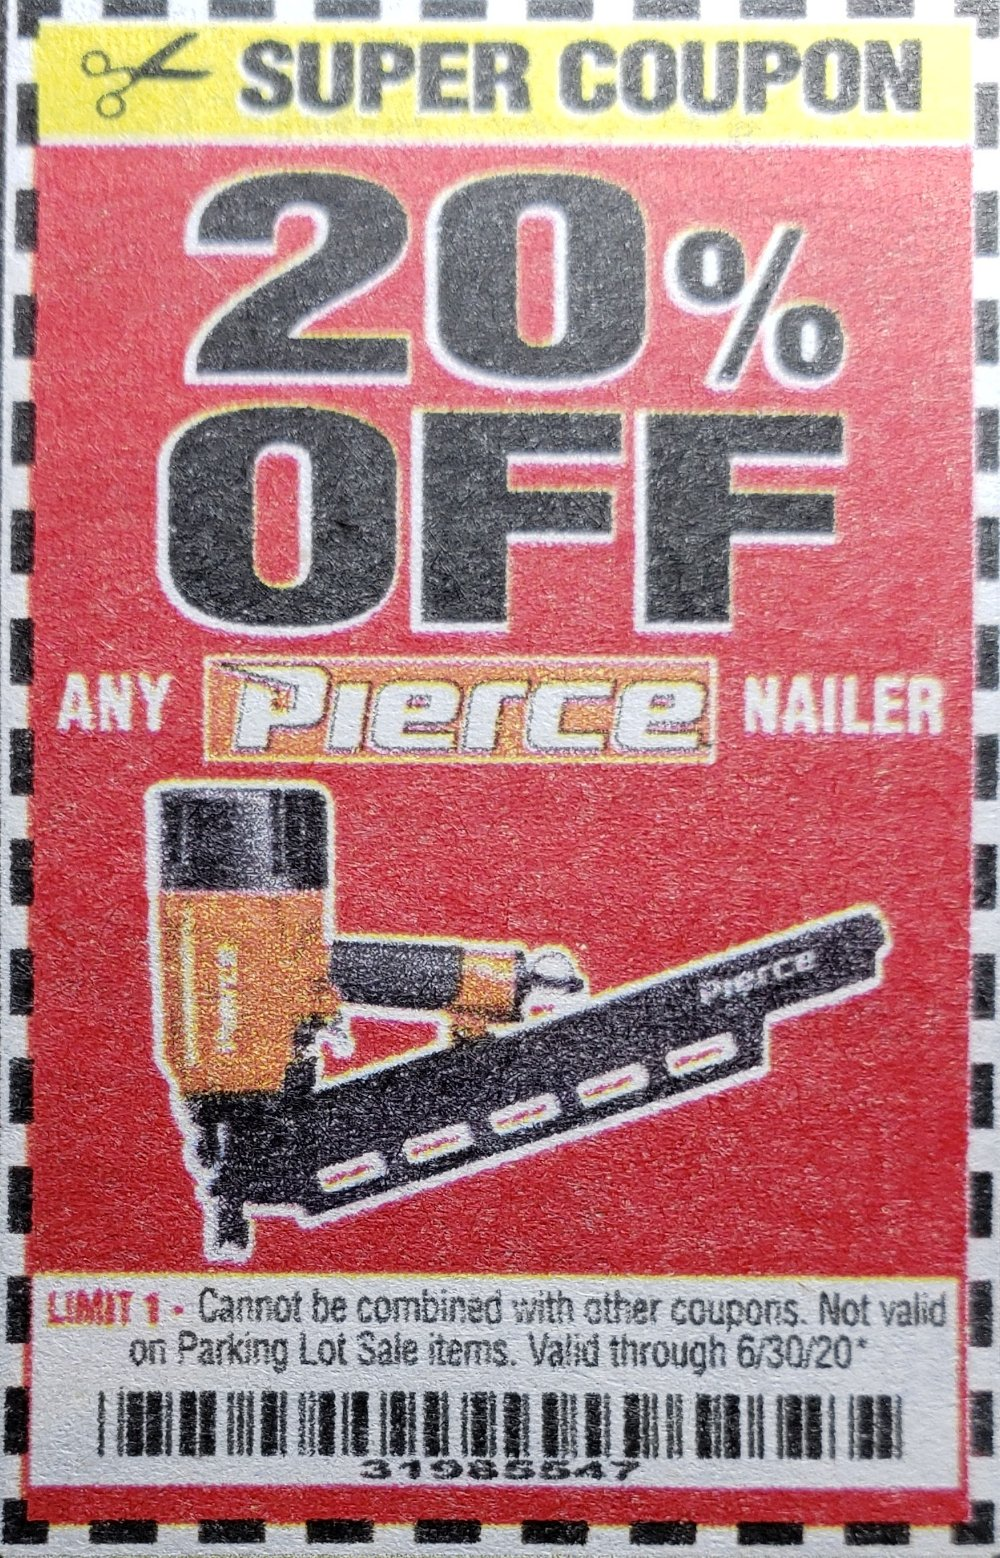 Harbor Freight Coupons, HF Coupons, 20% off - 20% off for any Pierce Nailer